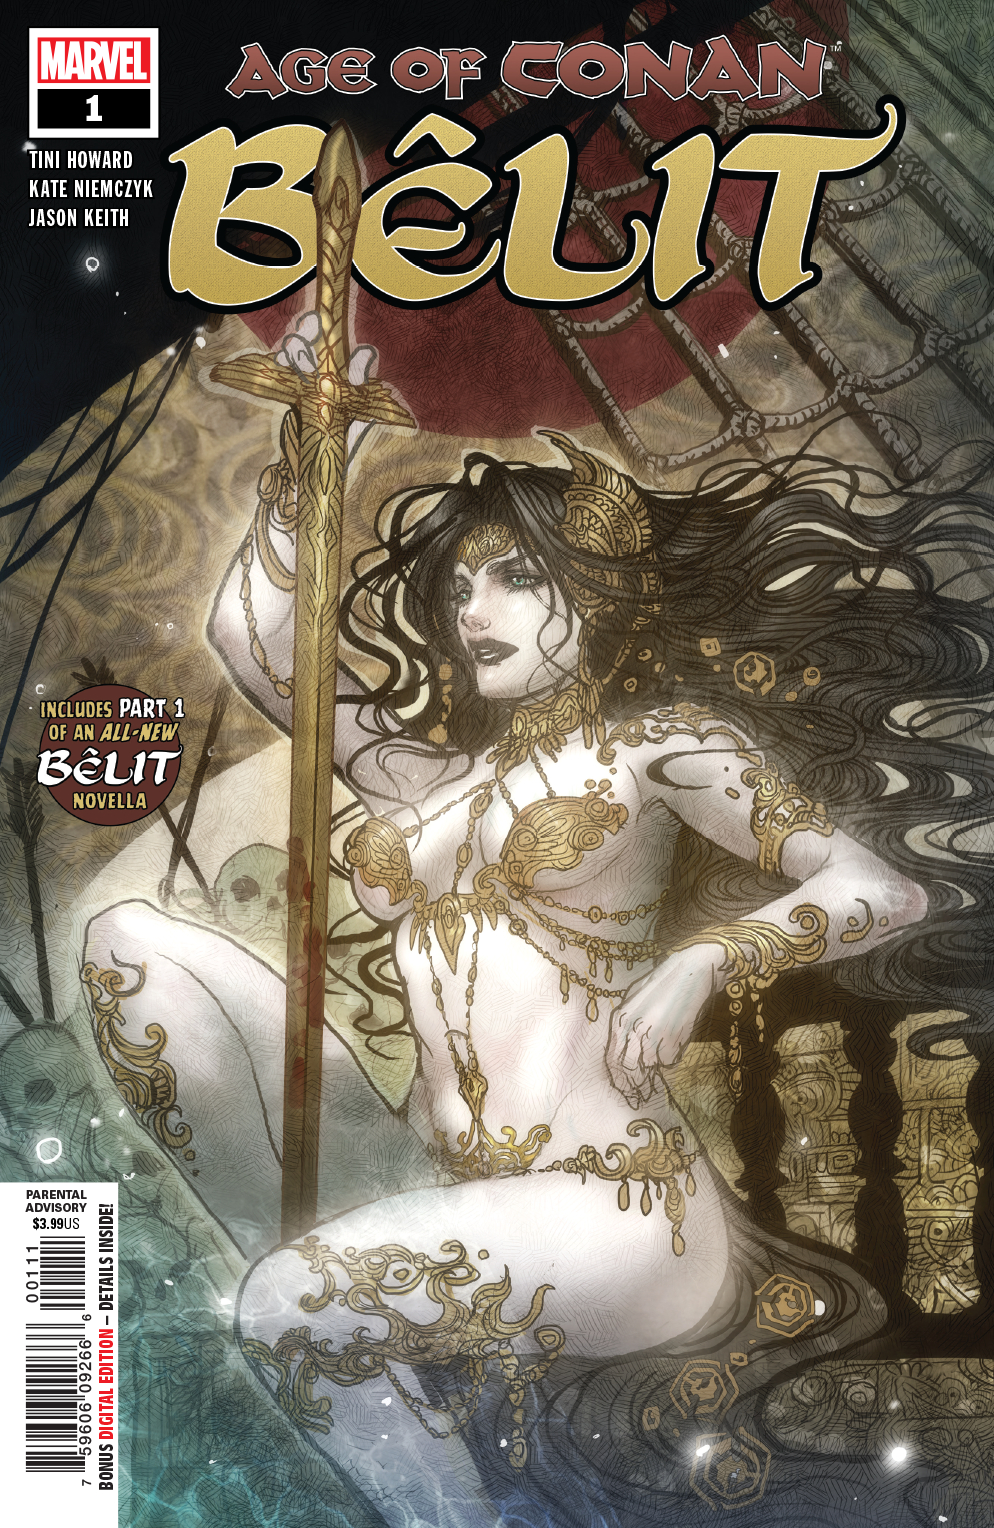 Belit, Queen of the Black Coast #1  is due out 3/13/2019.